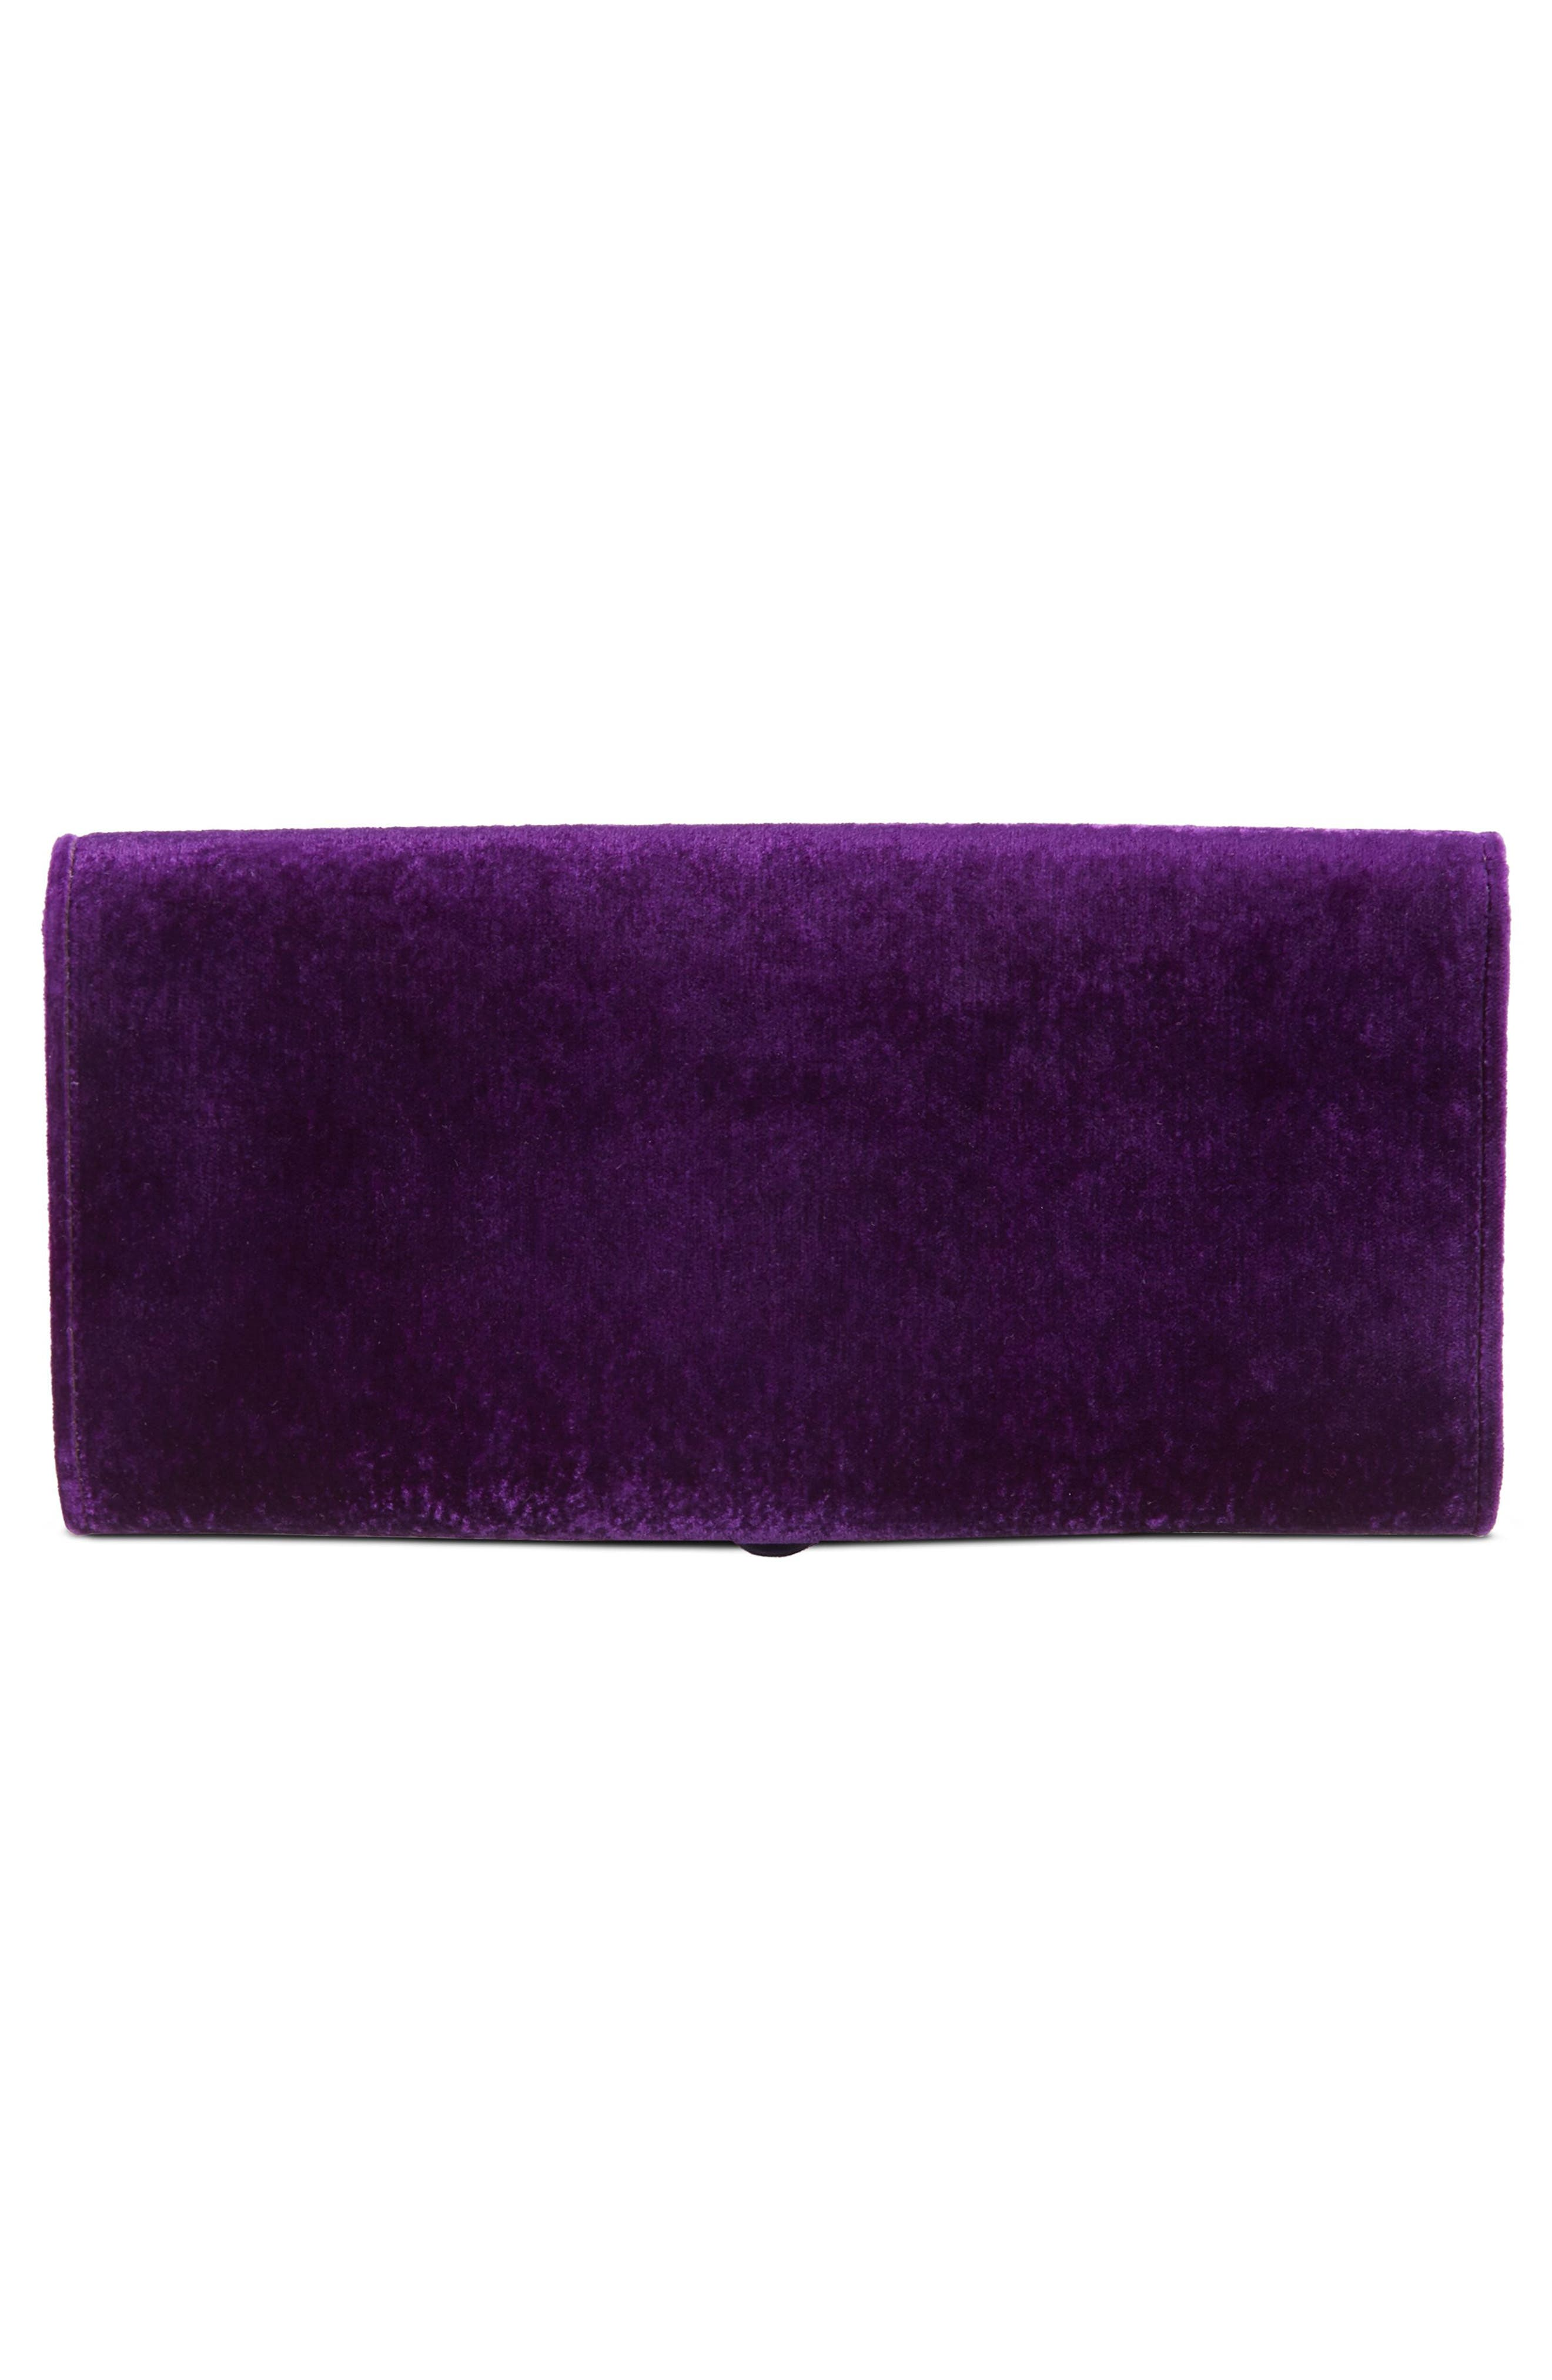 Dionysus Velvet Clutch,                             Alternate thumbnail 2, color,                             VIOLA/ BLACK DIAMOND